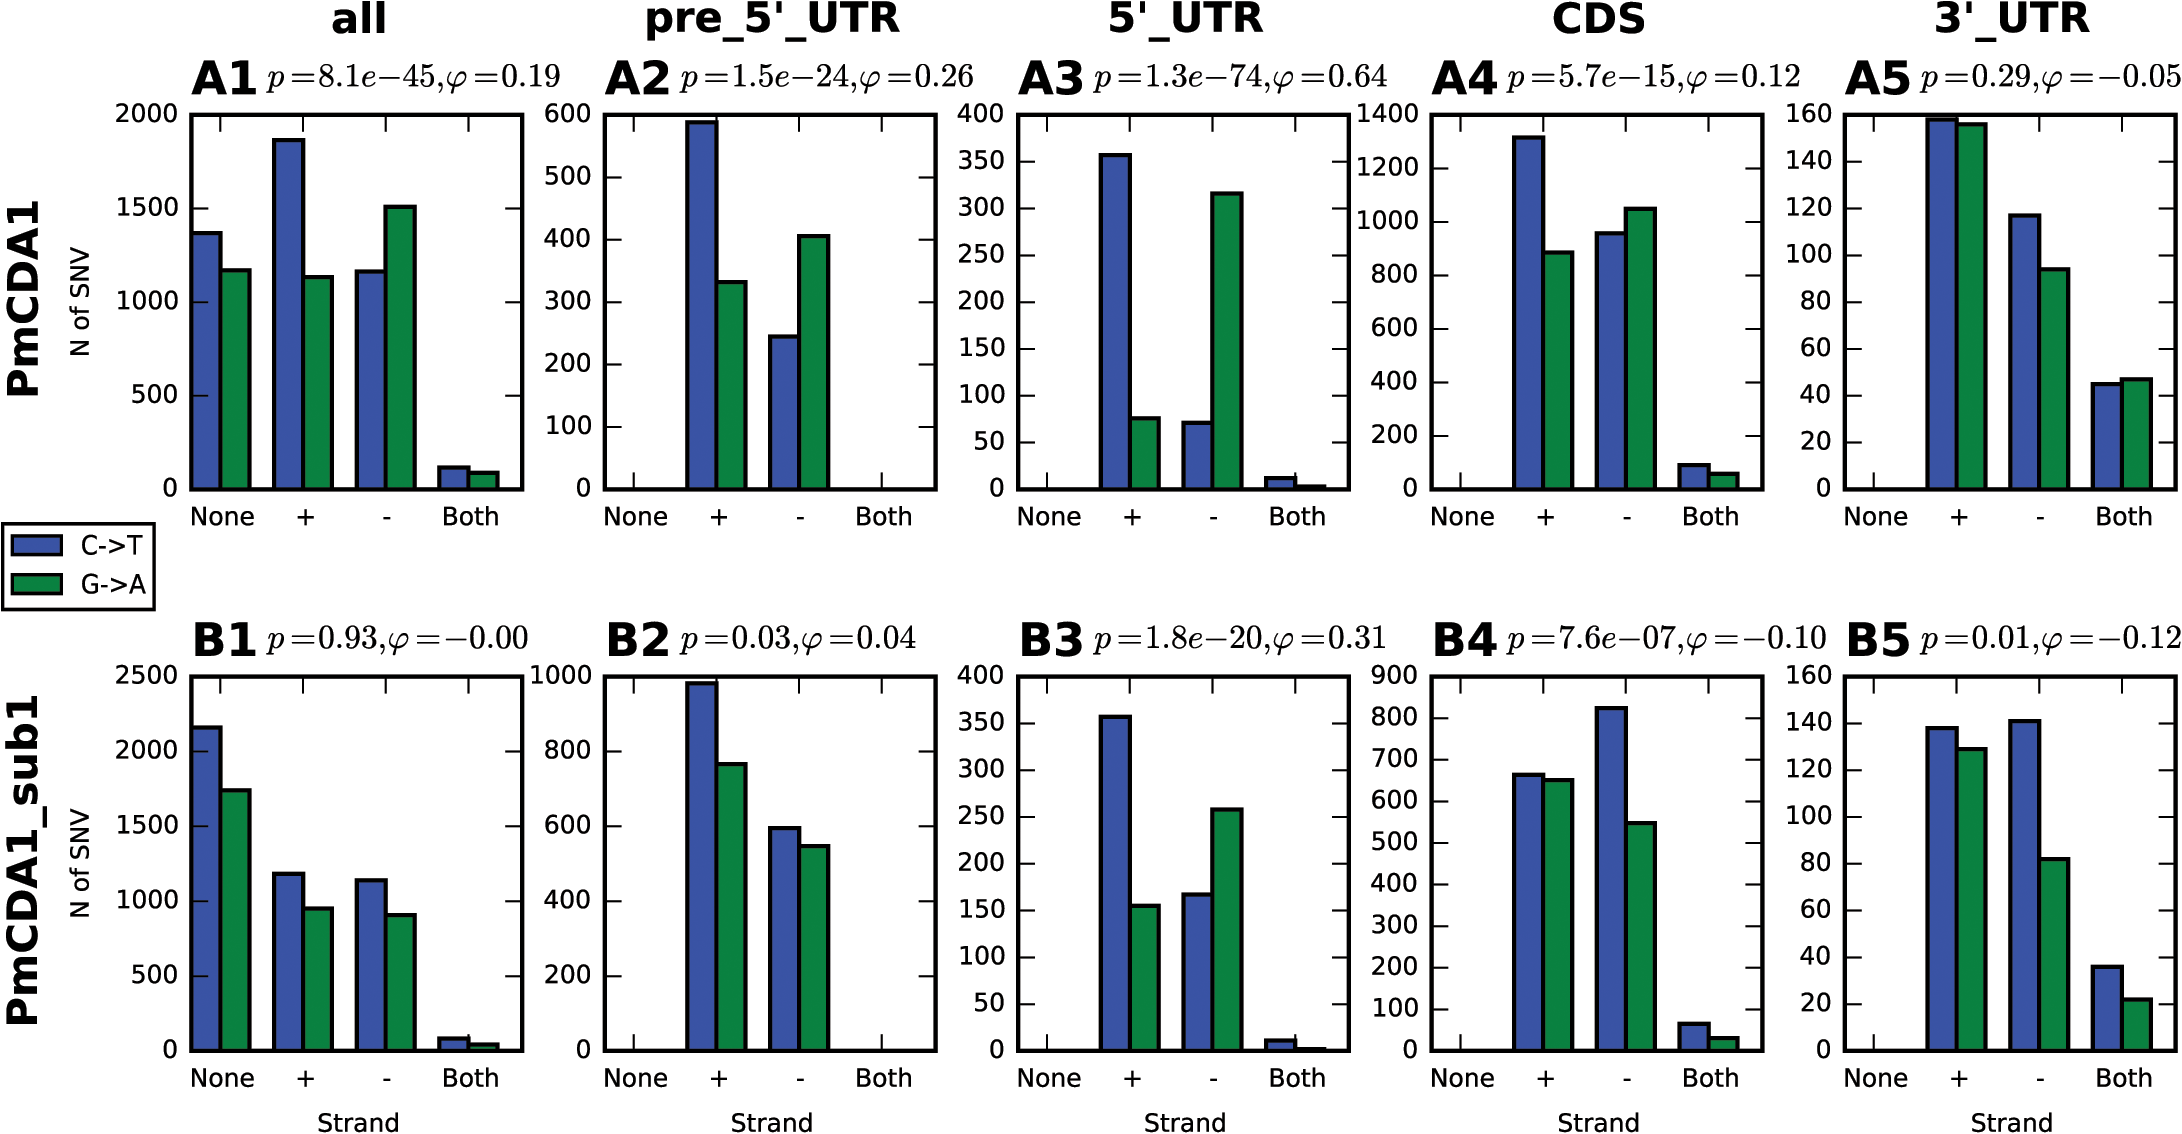 Analysis of strand-specificity of mutations reveals the predominant deamination of non-transcribed DNA strand and attenuation of this effect in strains defective in Sub1.